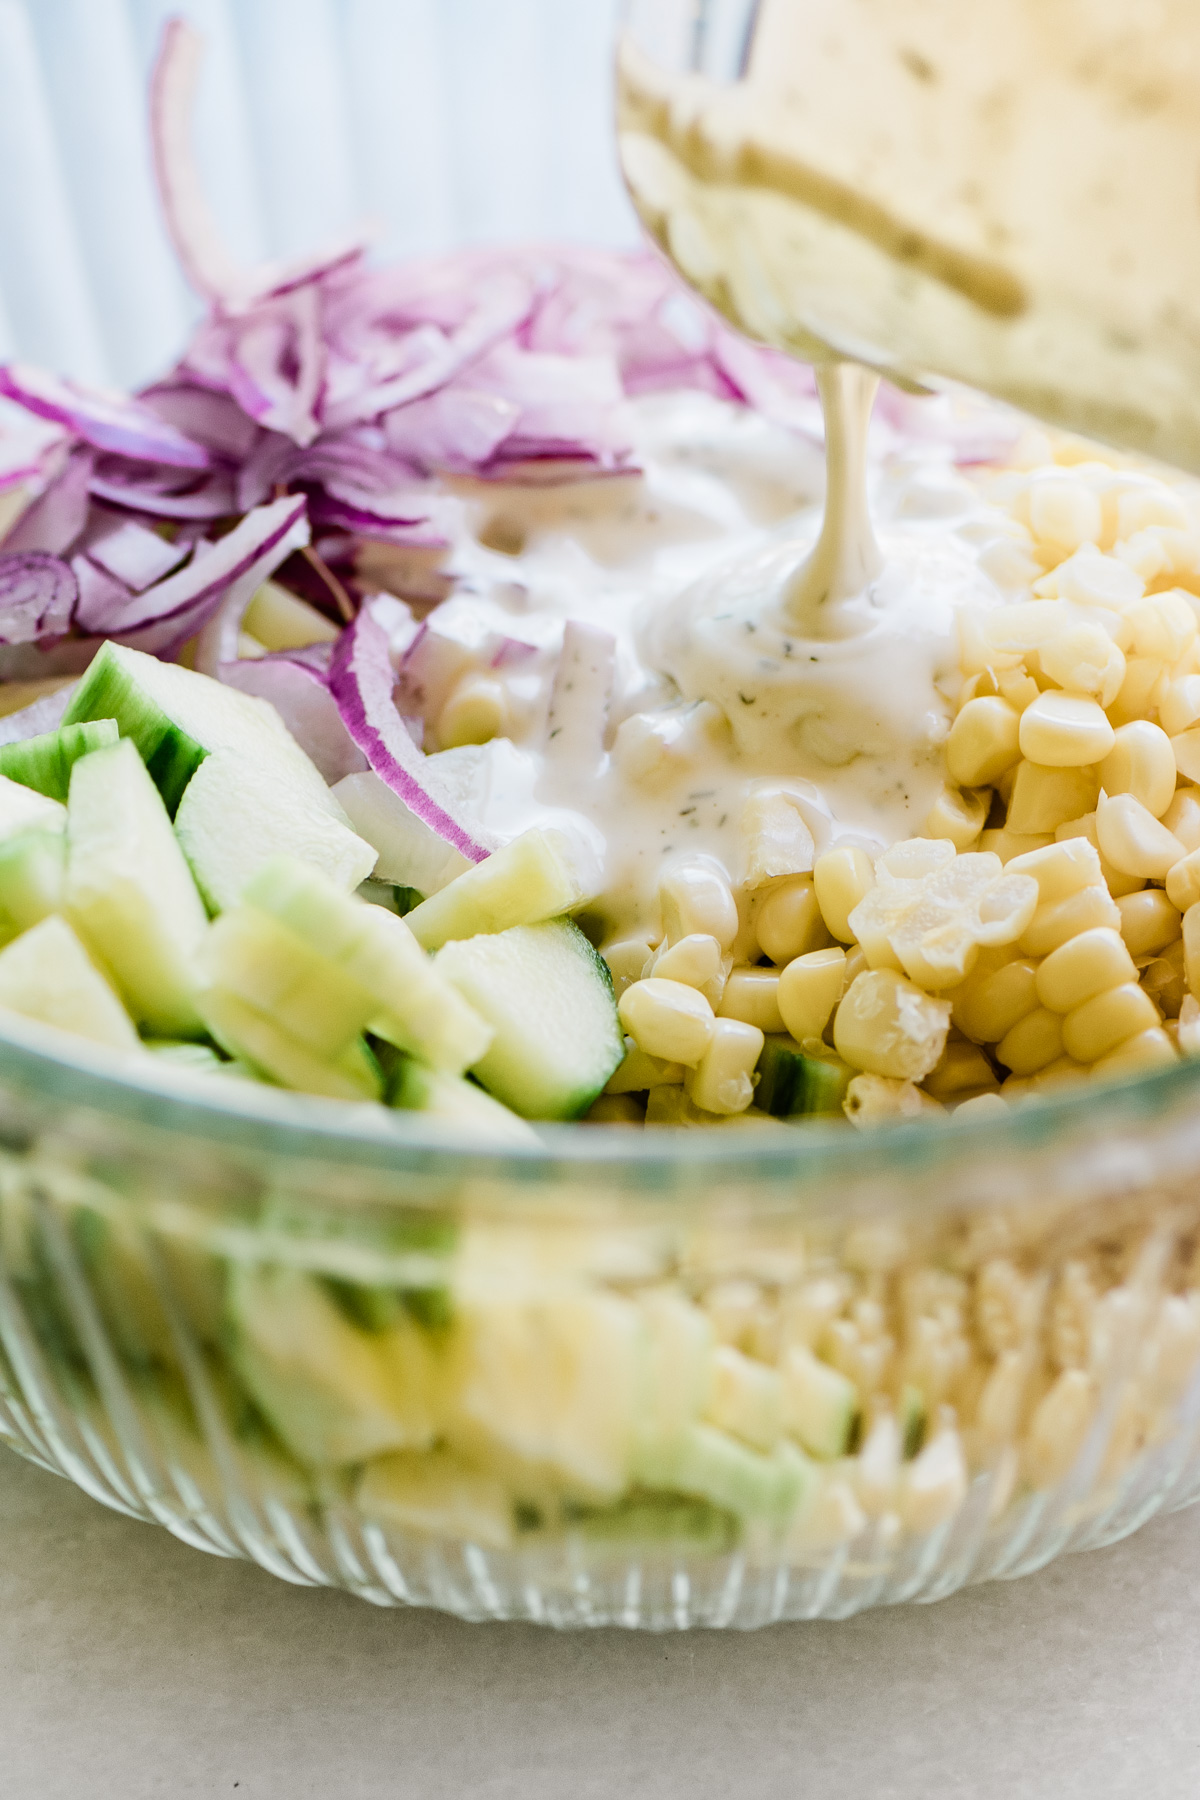 Pouring dressing on a corn and cucumber salad